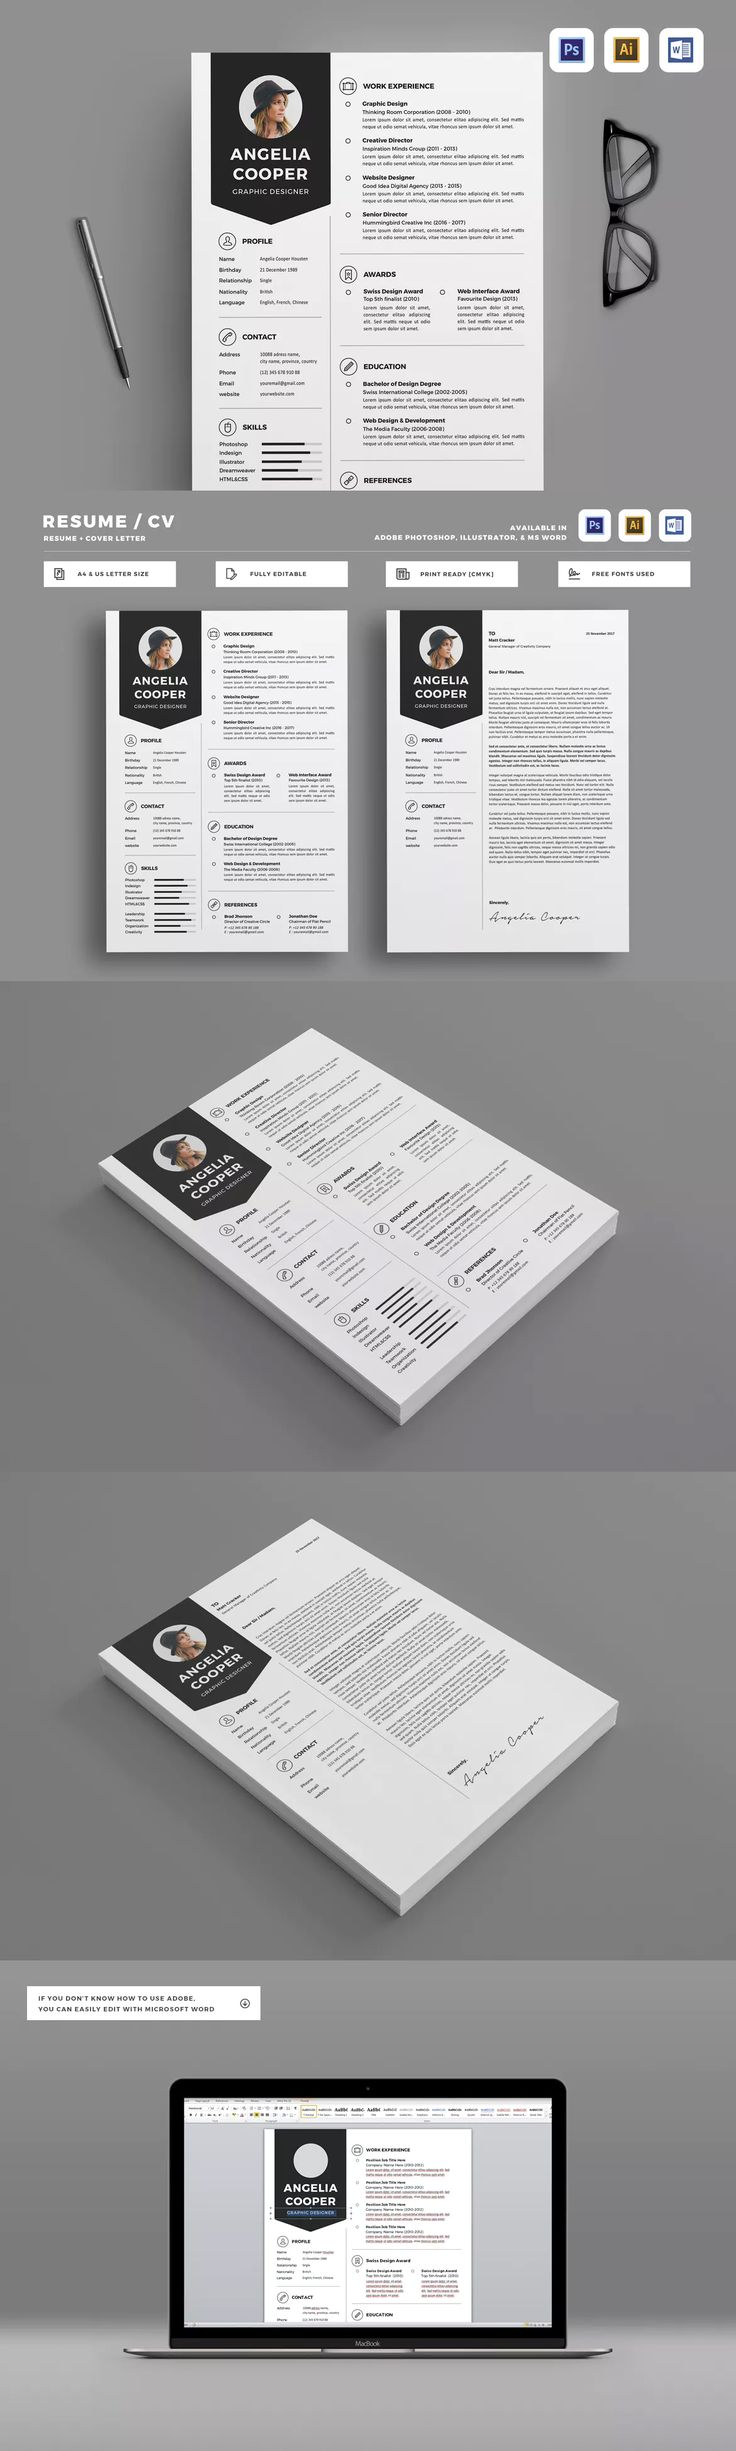 Resume Templates AI EPS PSD 98 best